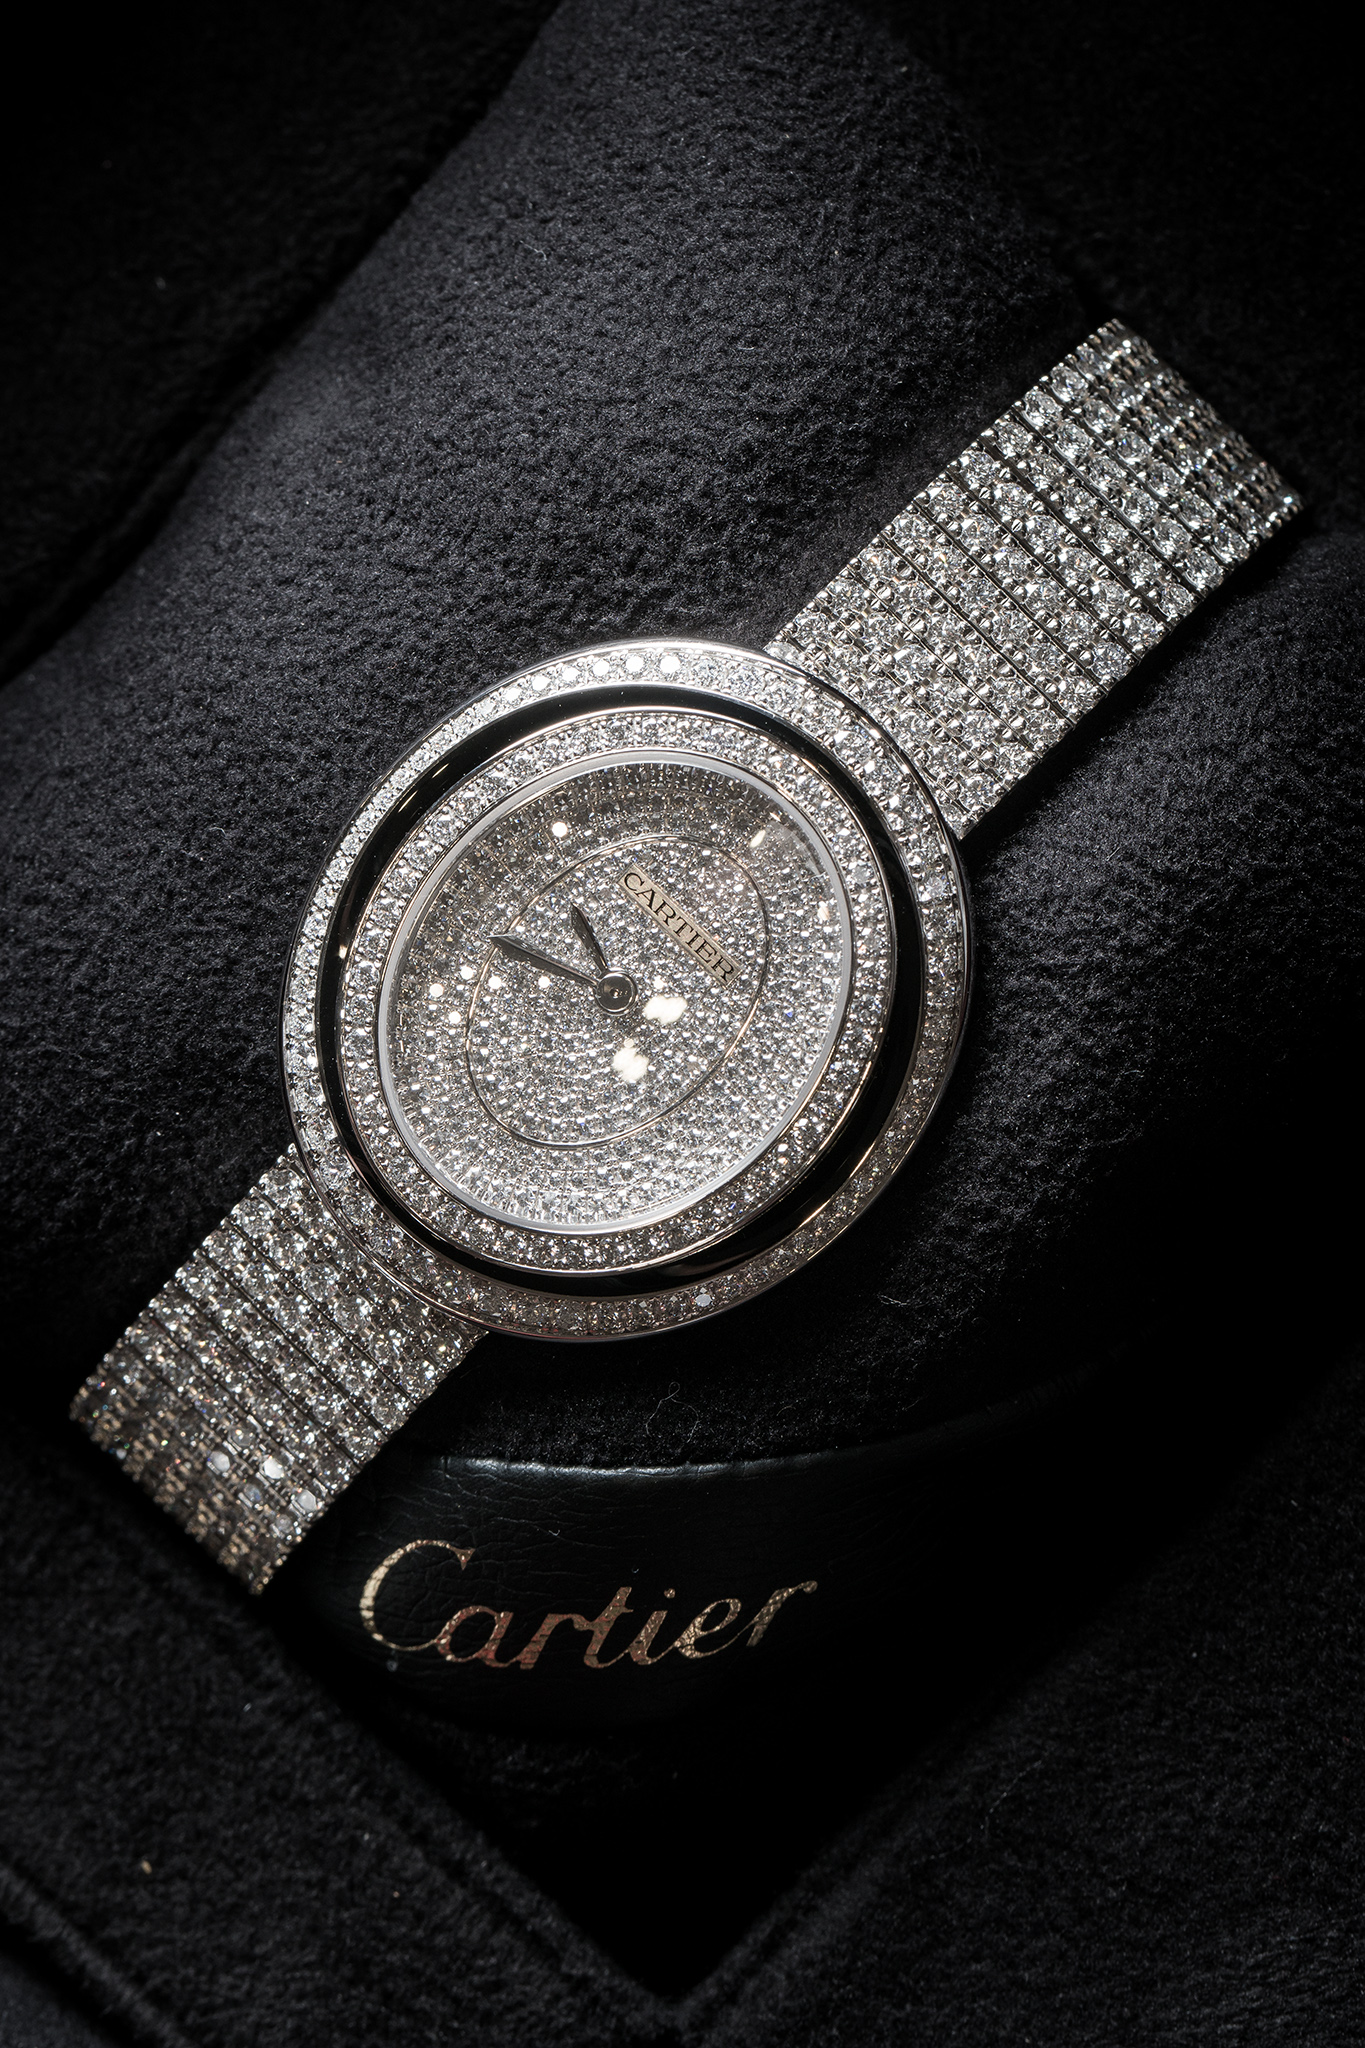 The eye-catching replica Cartier Hypnose HPI01049 watches are paved with diamonds.